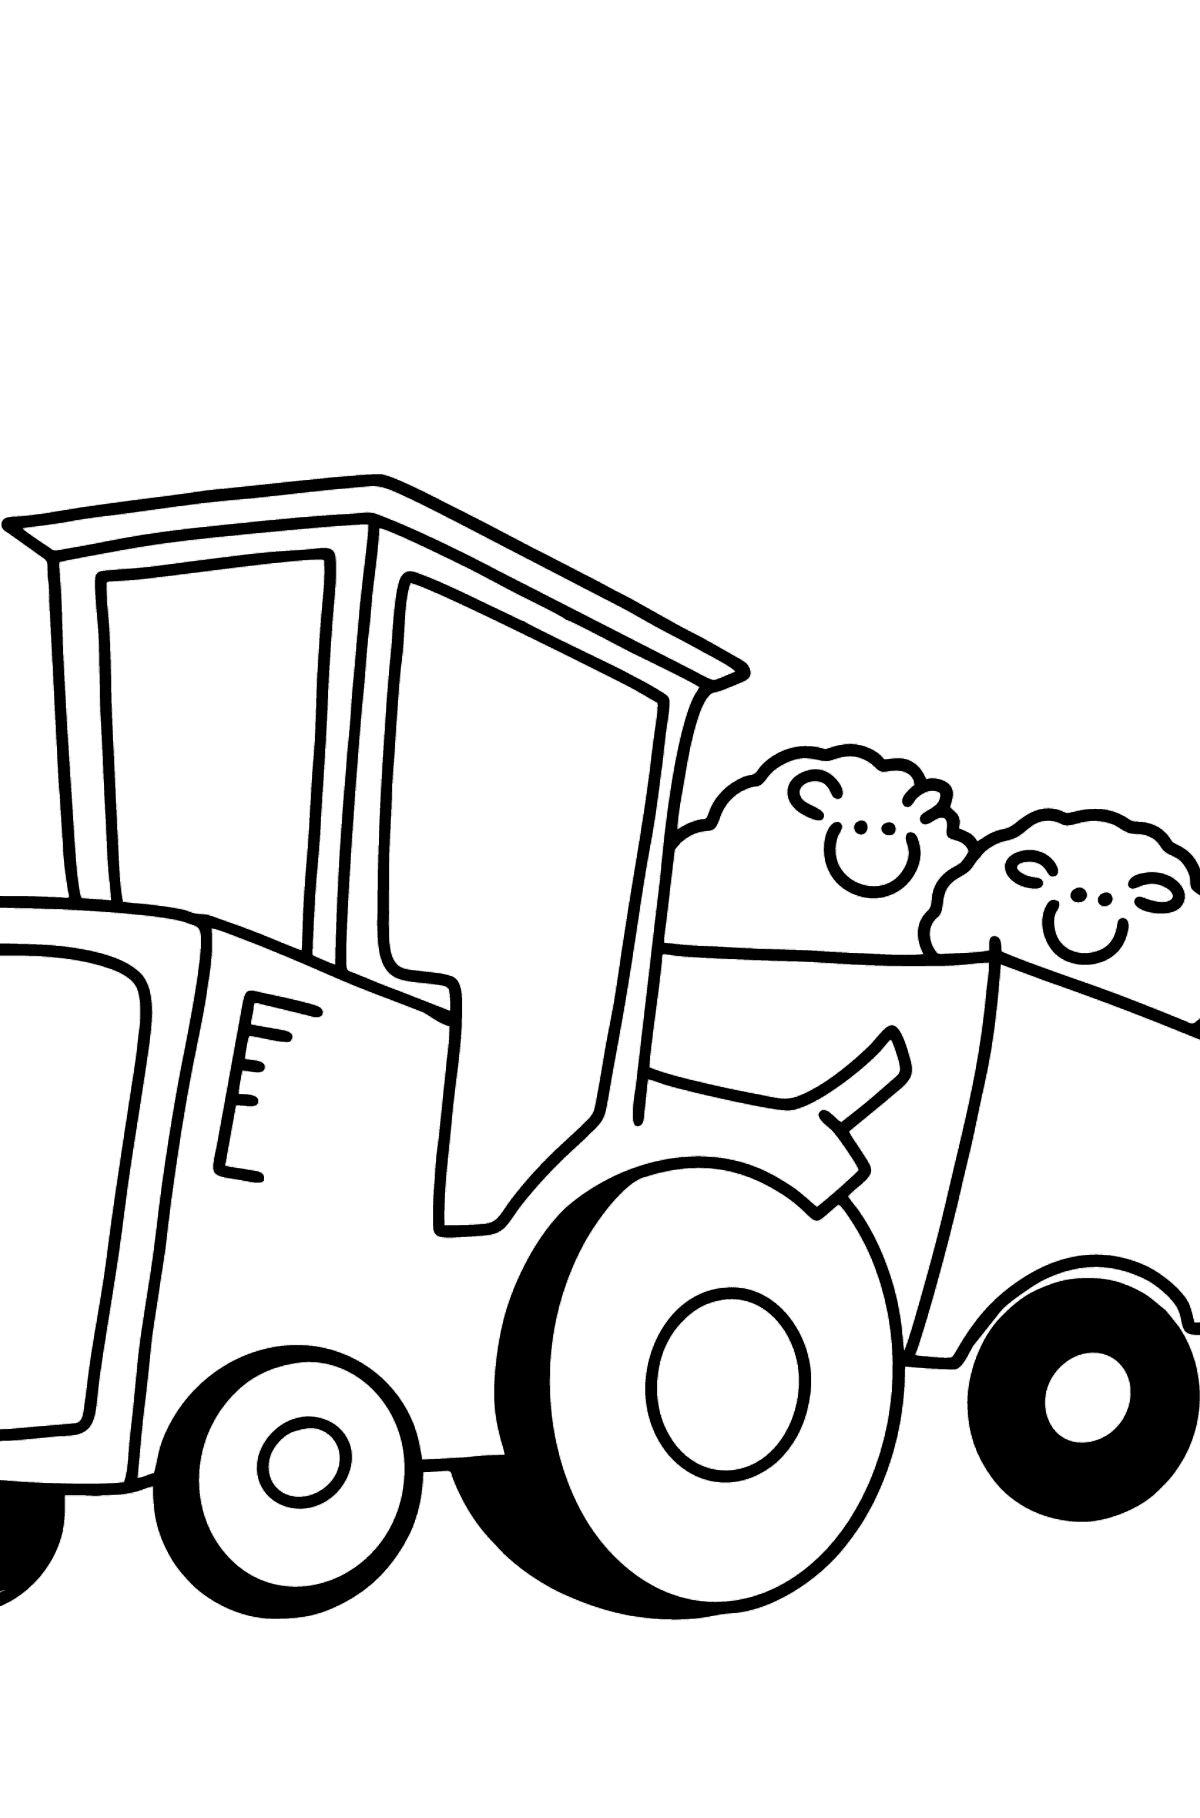 Tractor with Sheep Trailer coloring page - Coloring Pages for Kids